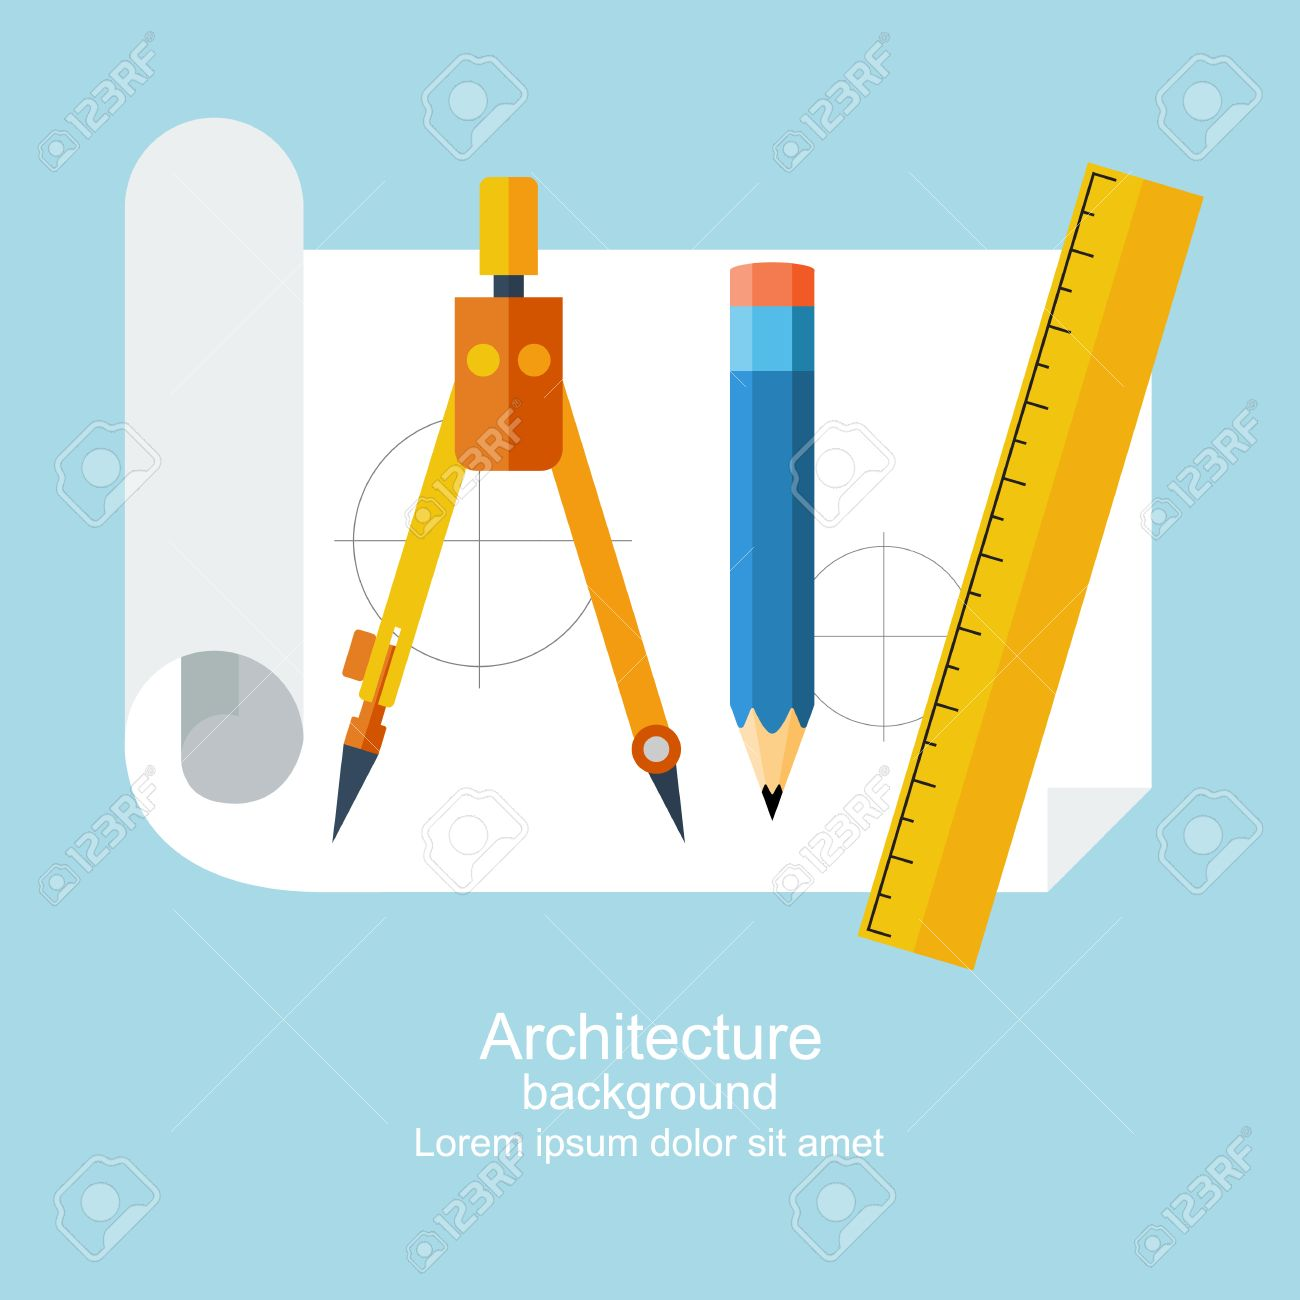 Drawing Tools Architecture Design Building Planning Can Be Used For Education